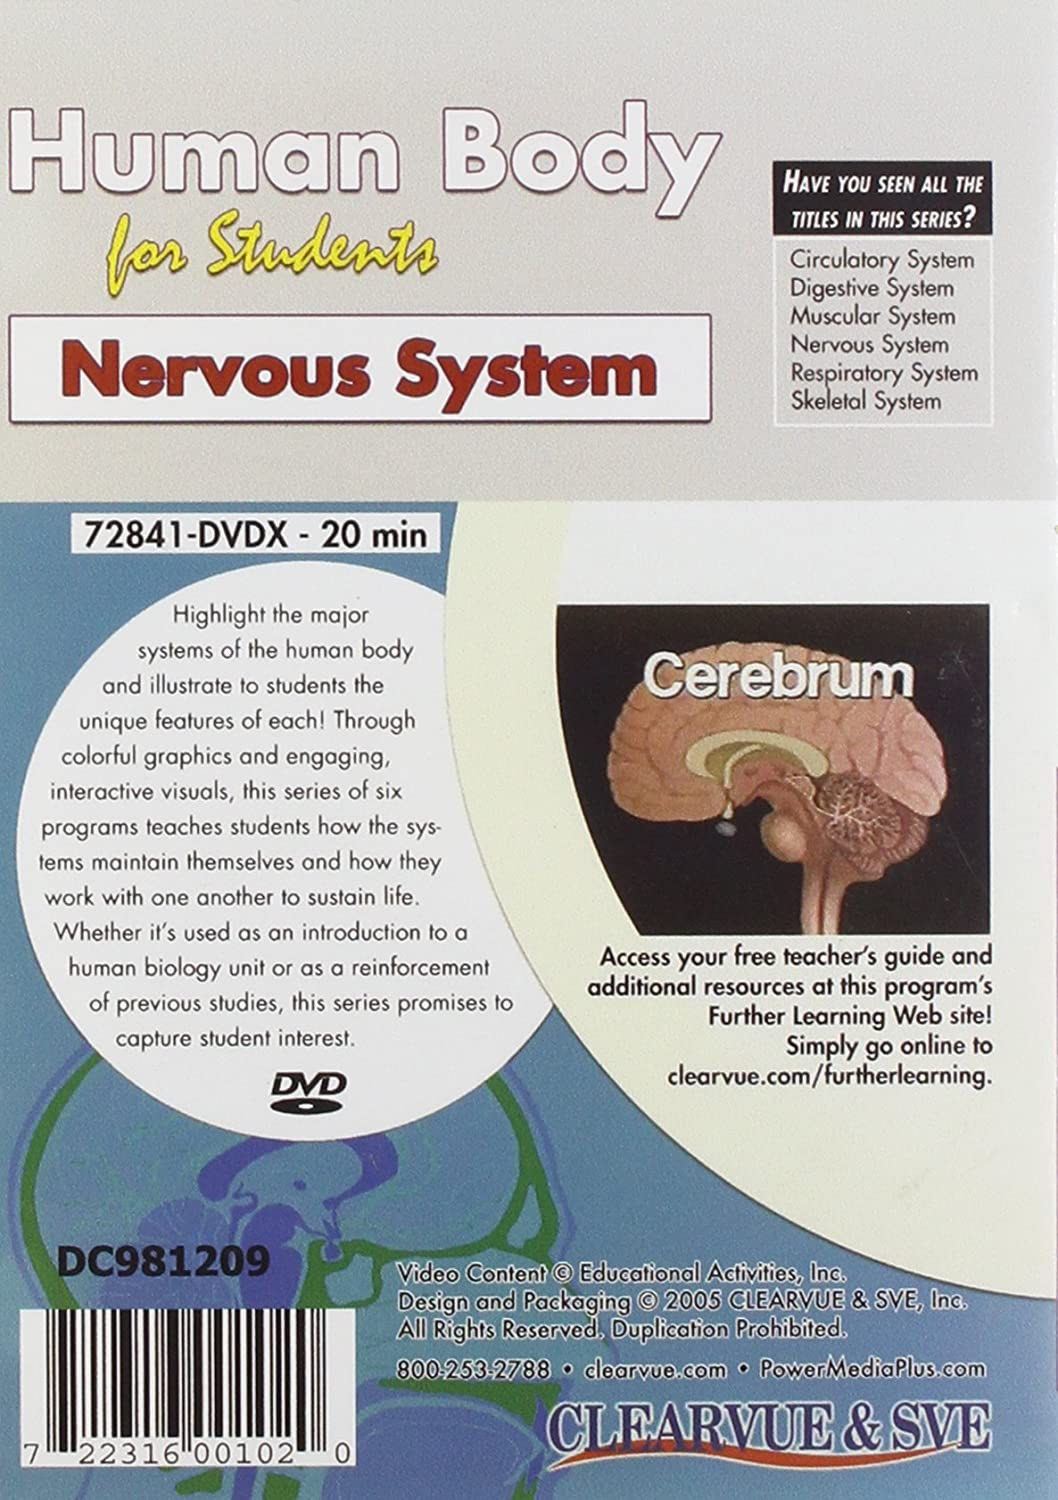 Amazon com: Human Body for Students: Nervous System: Movies & TV